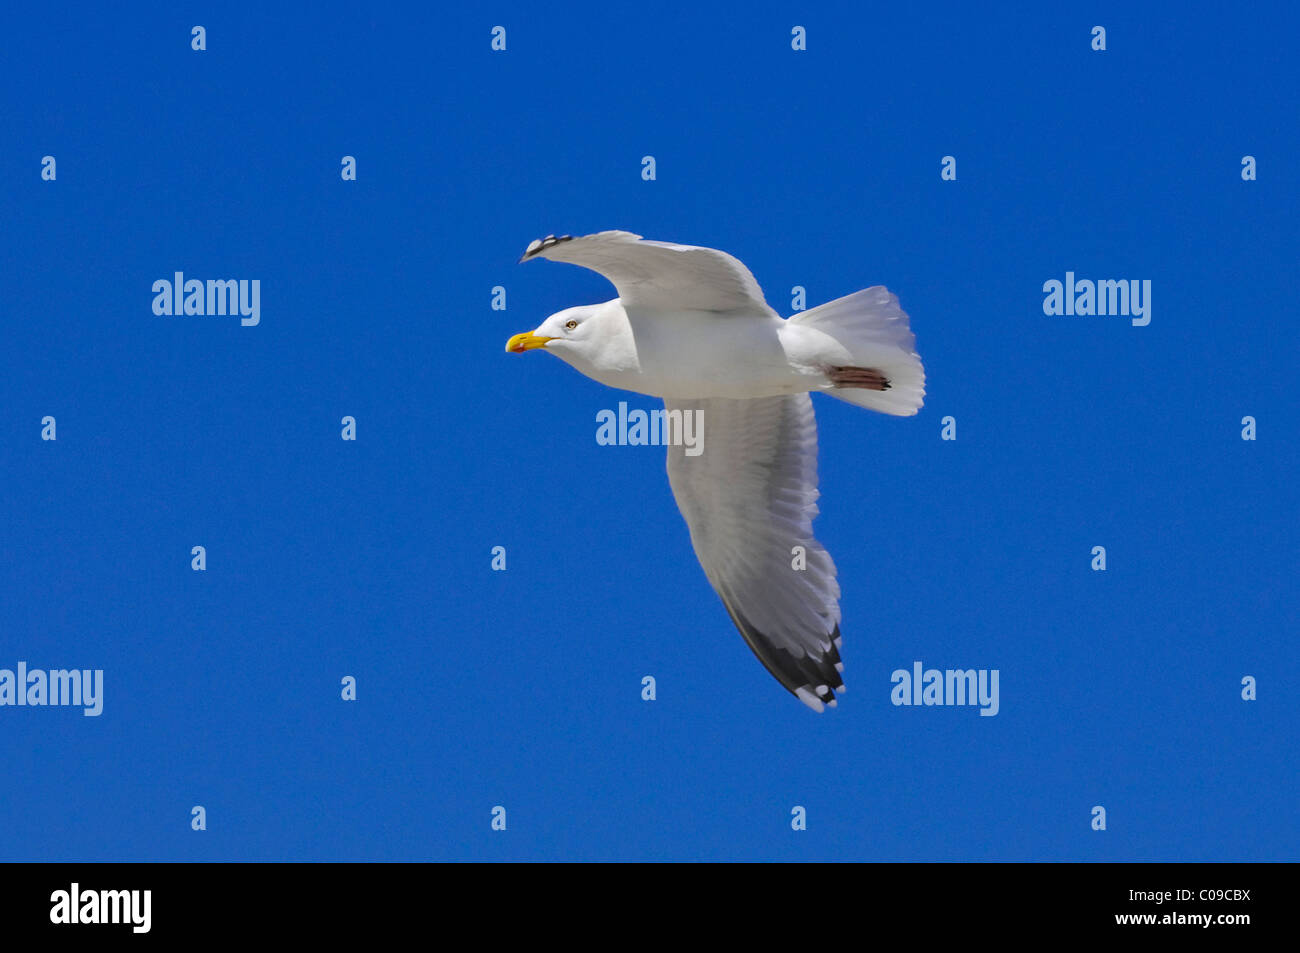 Herring gull (Larus argentatus in) in flight - Stock Image